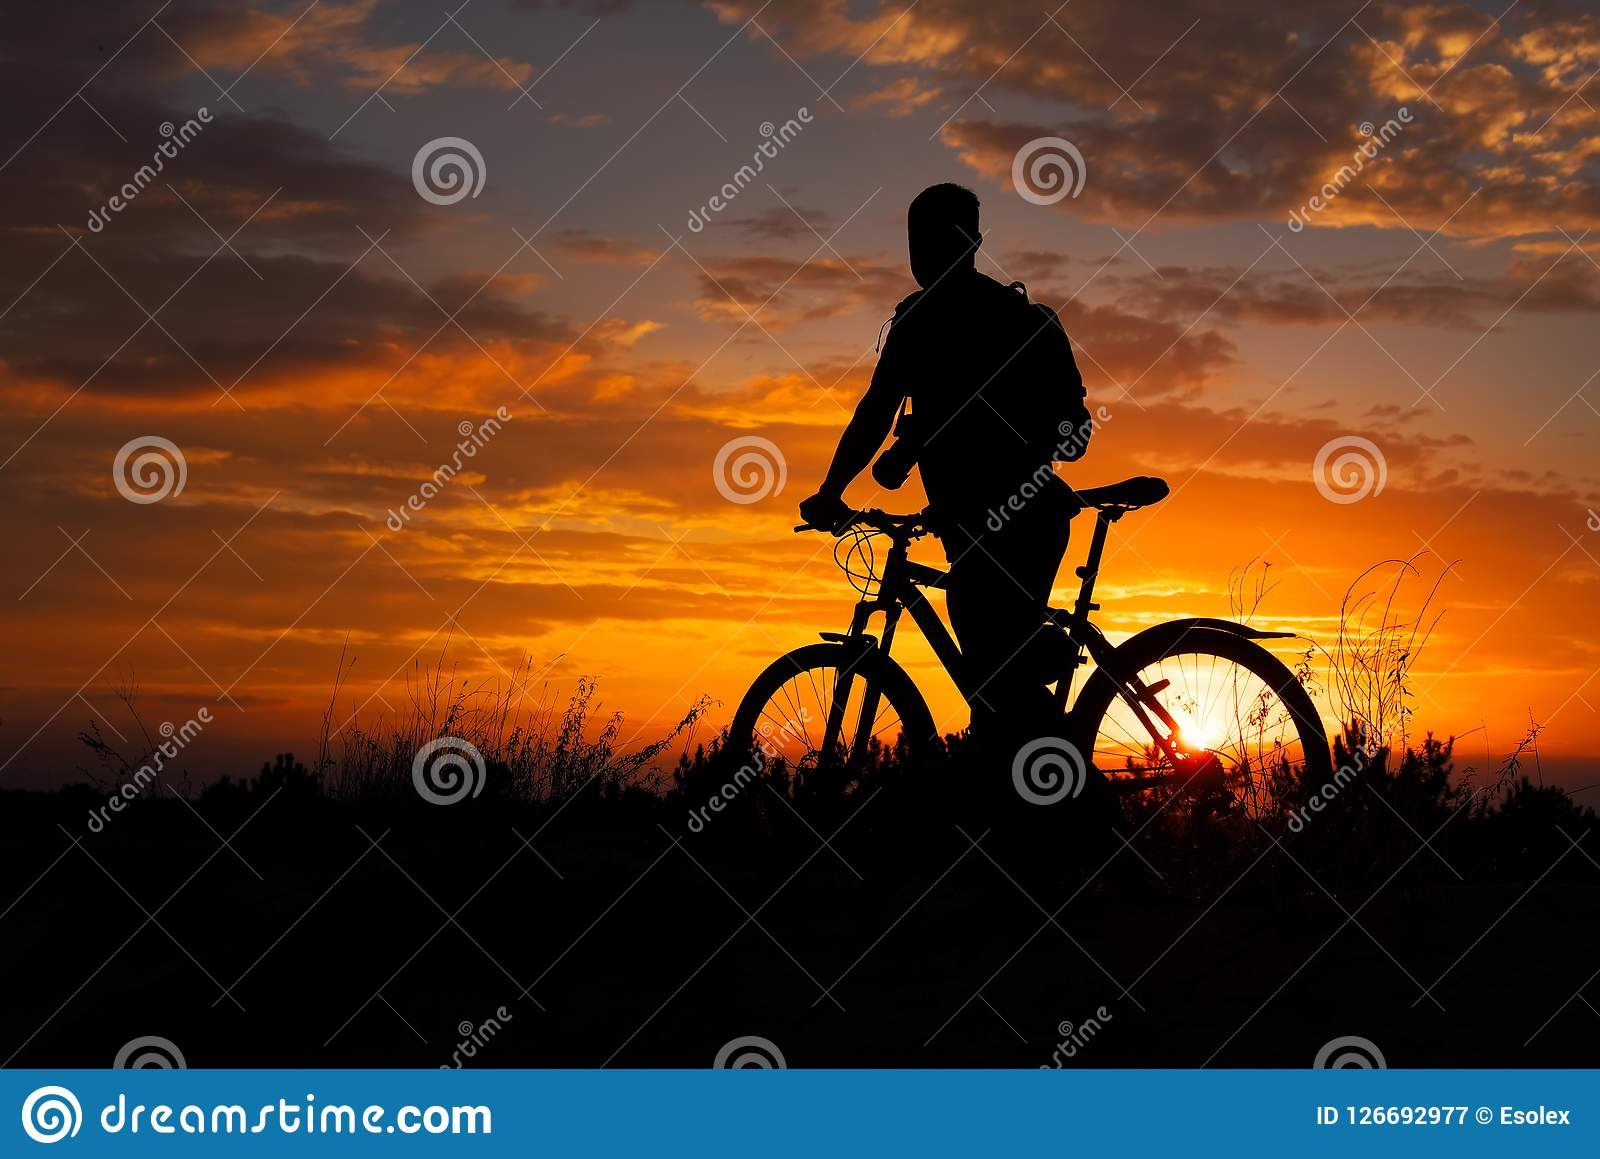 Silhouette of sports person cycling on the meadow